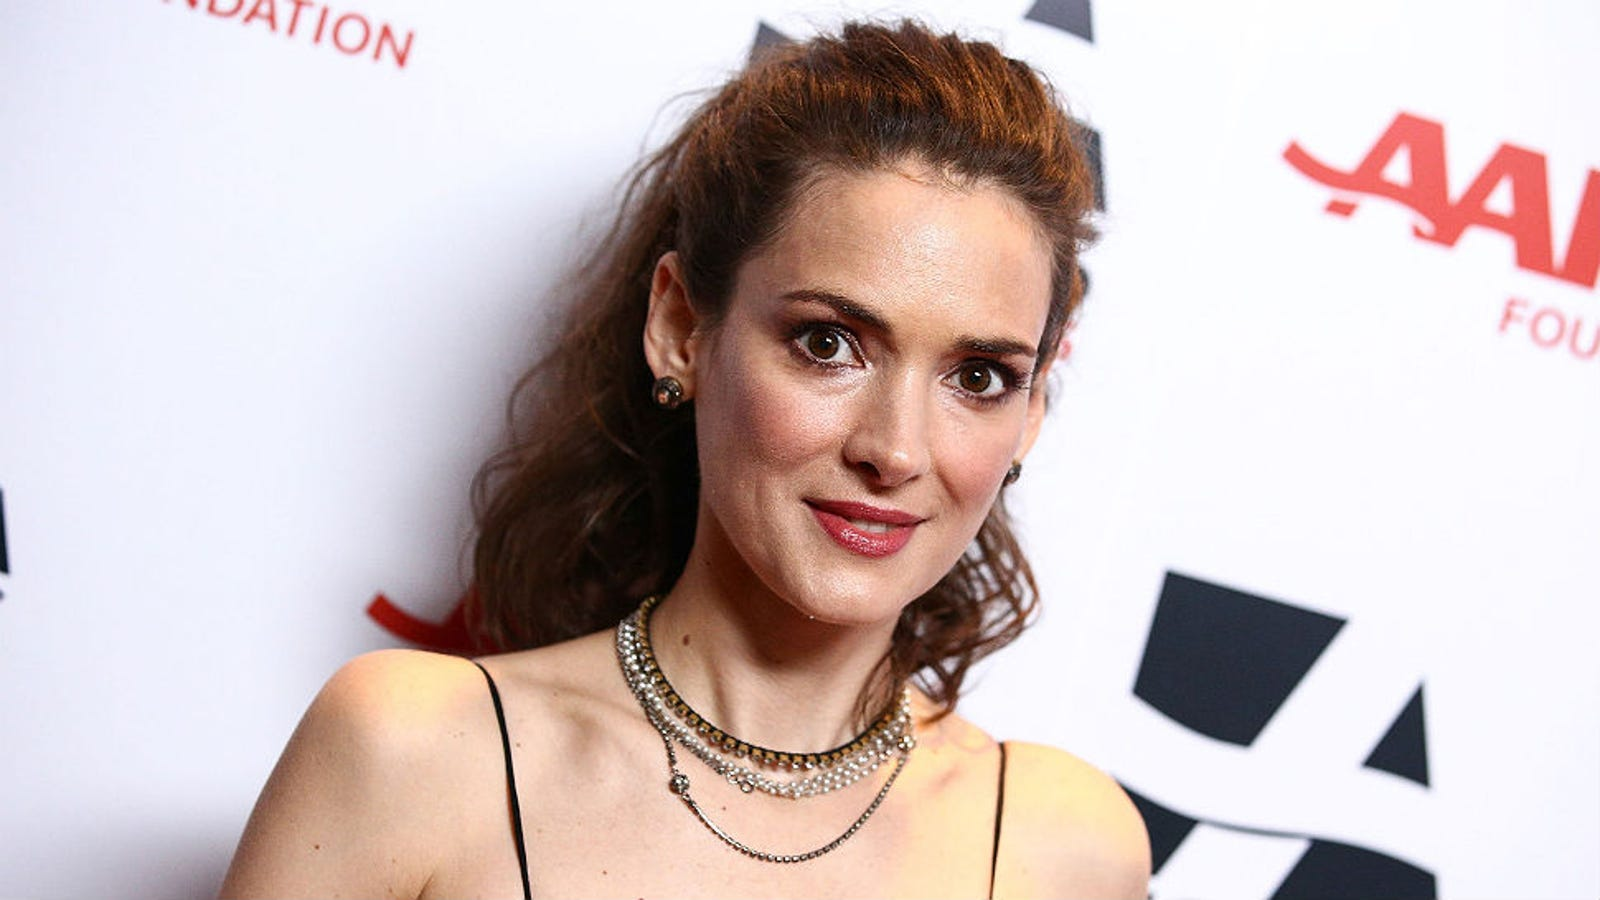 ICloud Winona Ryder nude (92 photos), Sexy, Fappening, Feet, braless 2006